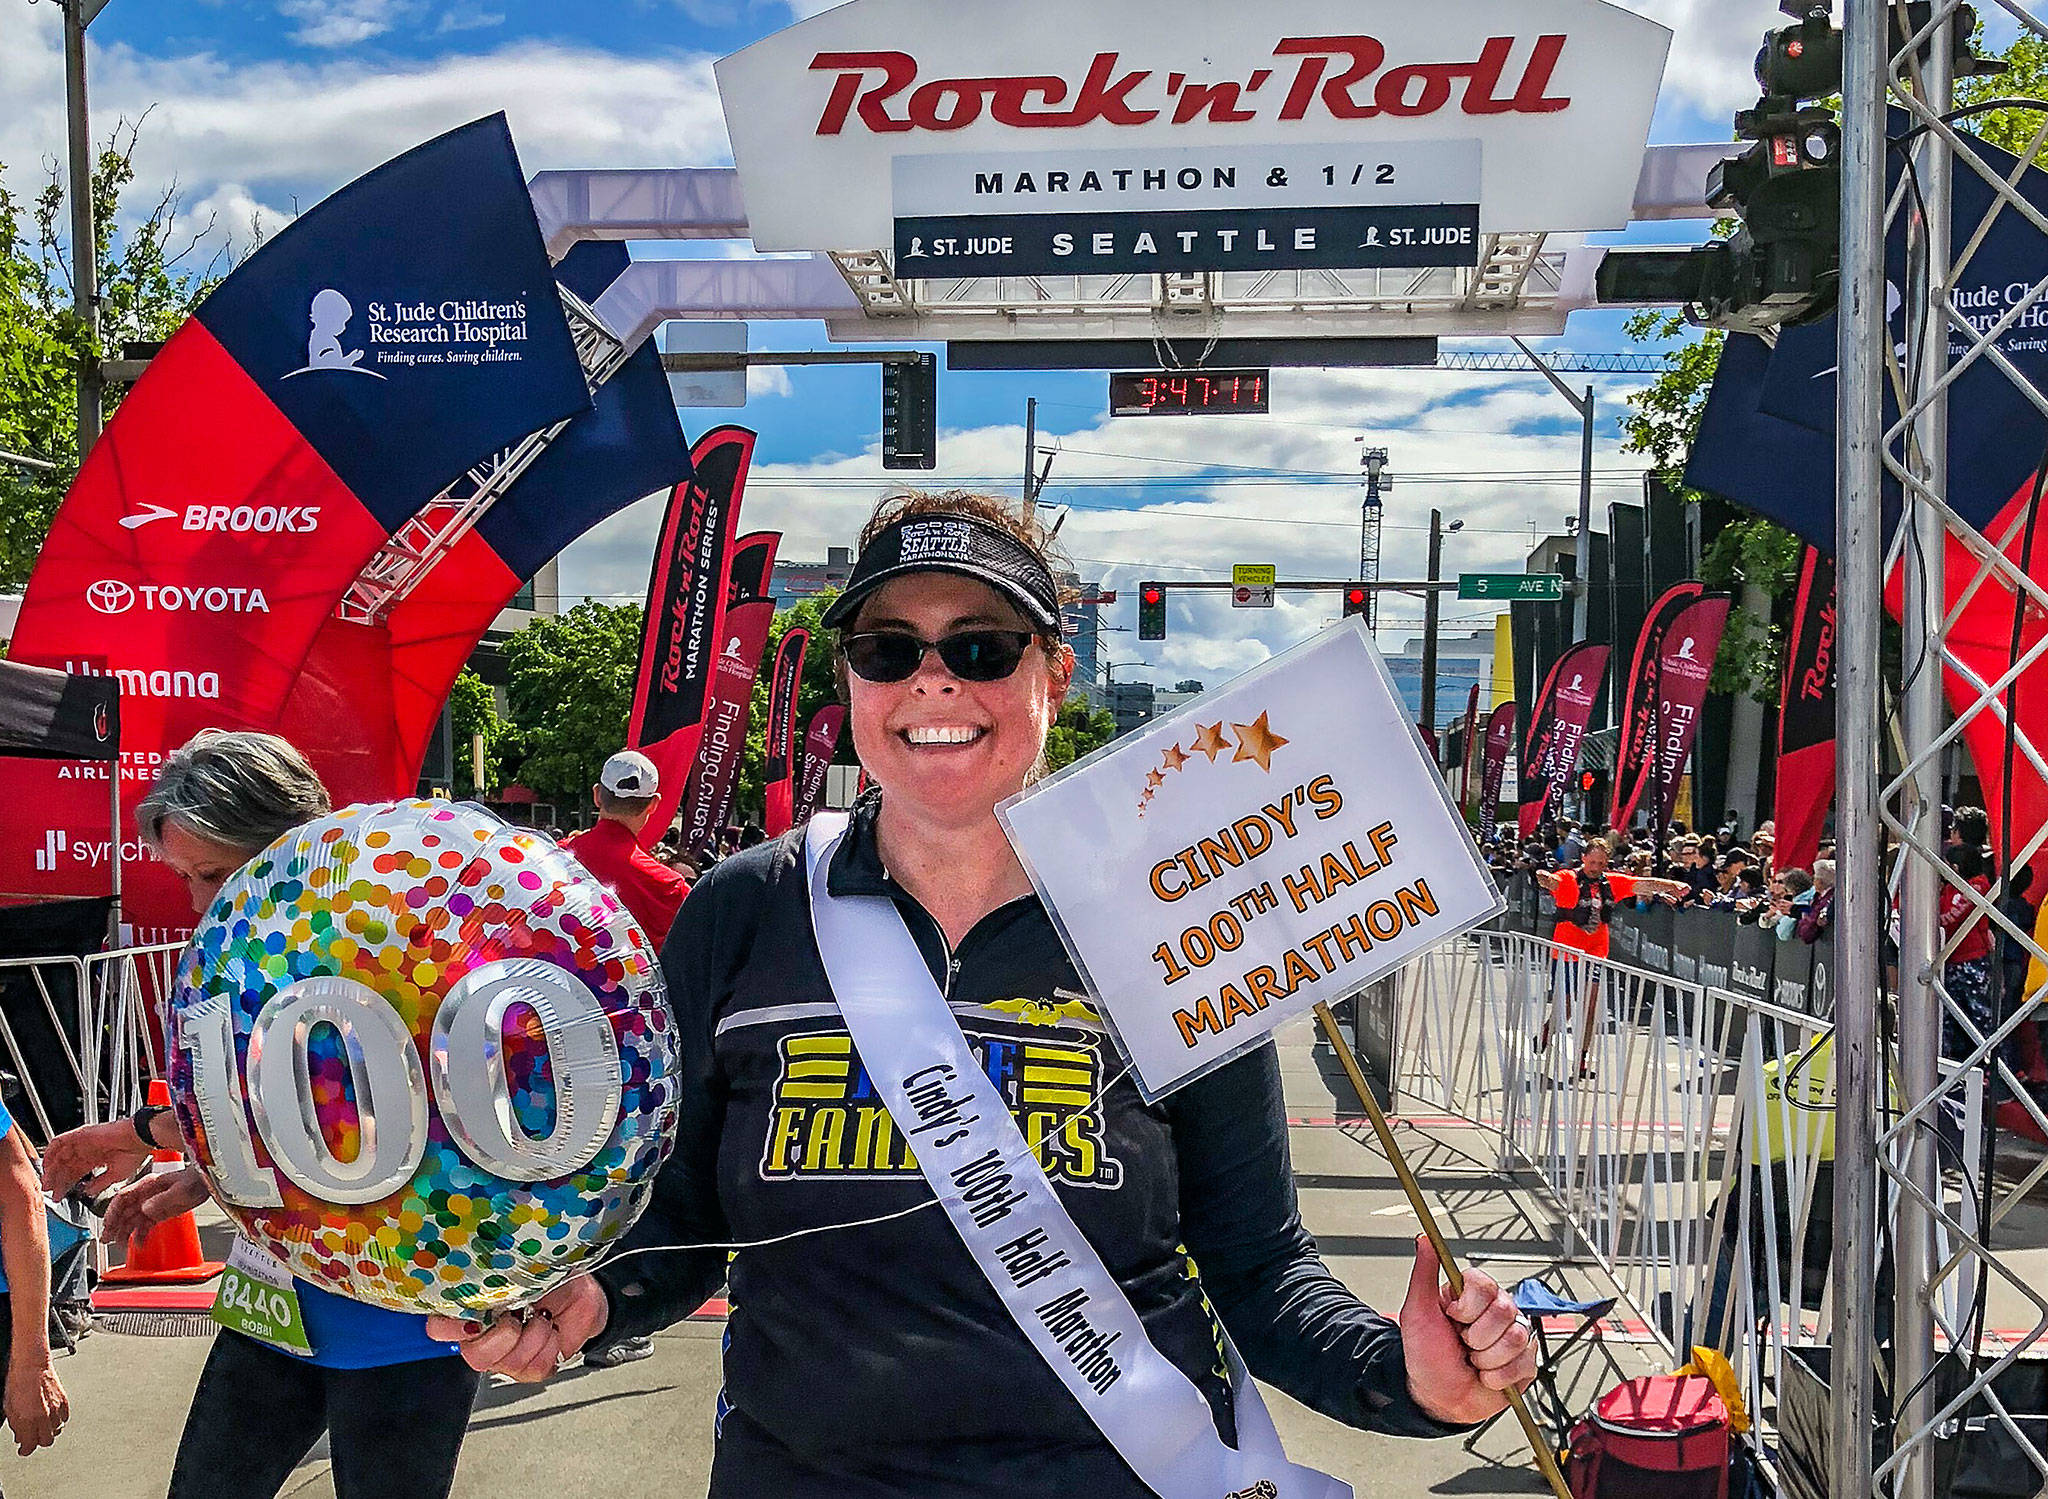 Lynnwood's Cindy Ward, 42, completed her 100th half marathon earlier this month. Here, she celebrates at the finish line of the Rock 'n' Roll Seattle Half Marathon at Seattle Center. (Photo courtesy Cindy Ward and Gretchen Tapp)